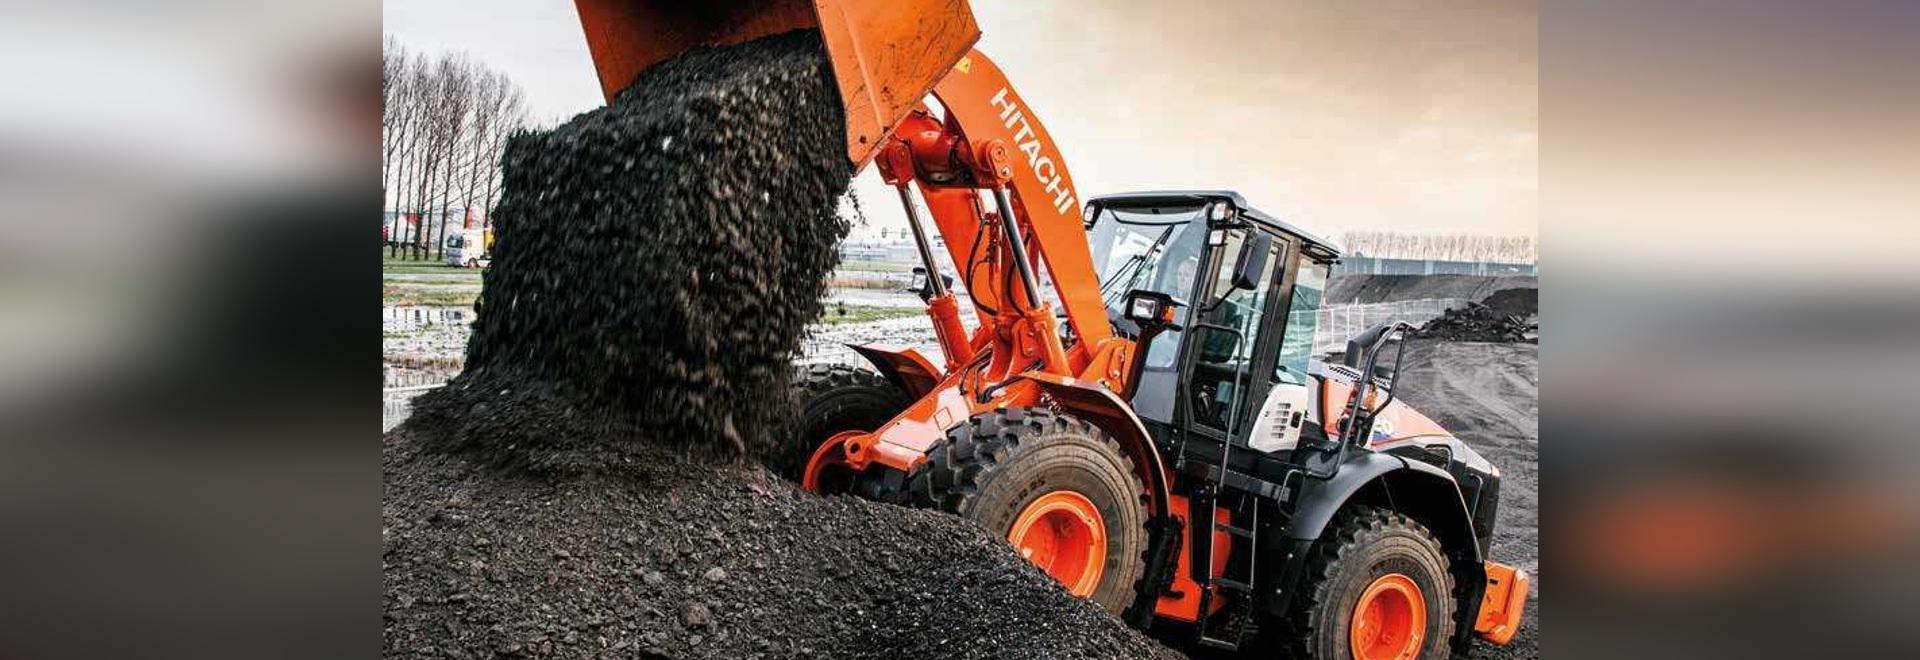 Hitachi ZW220-6 Wheel Loader